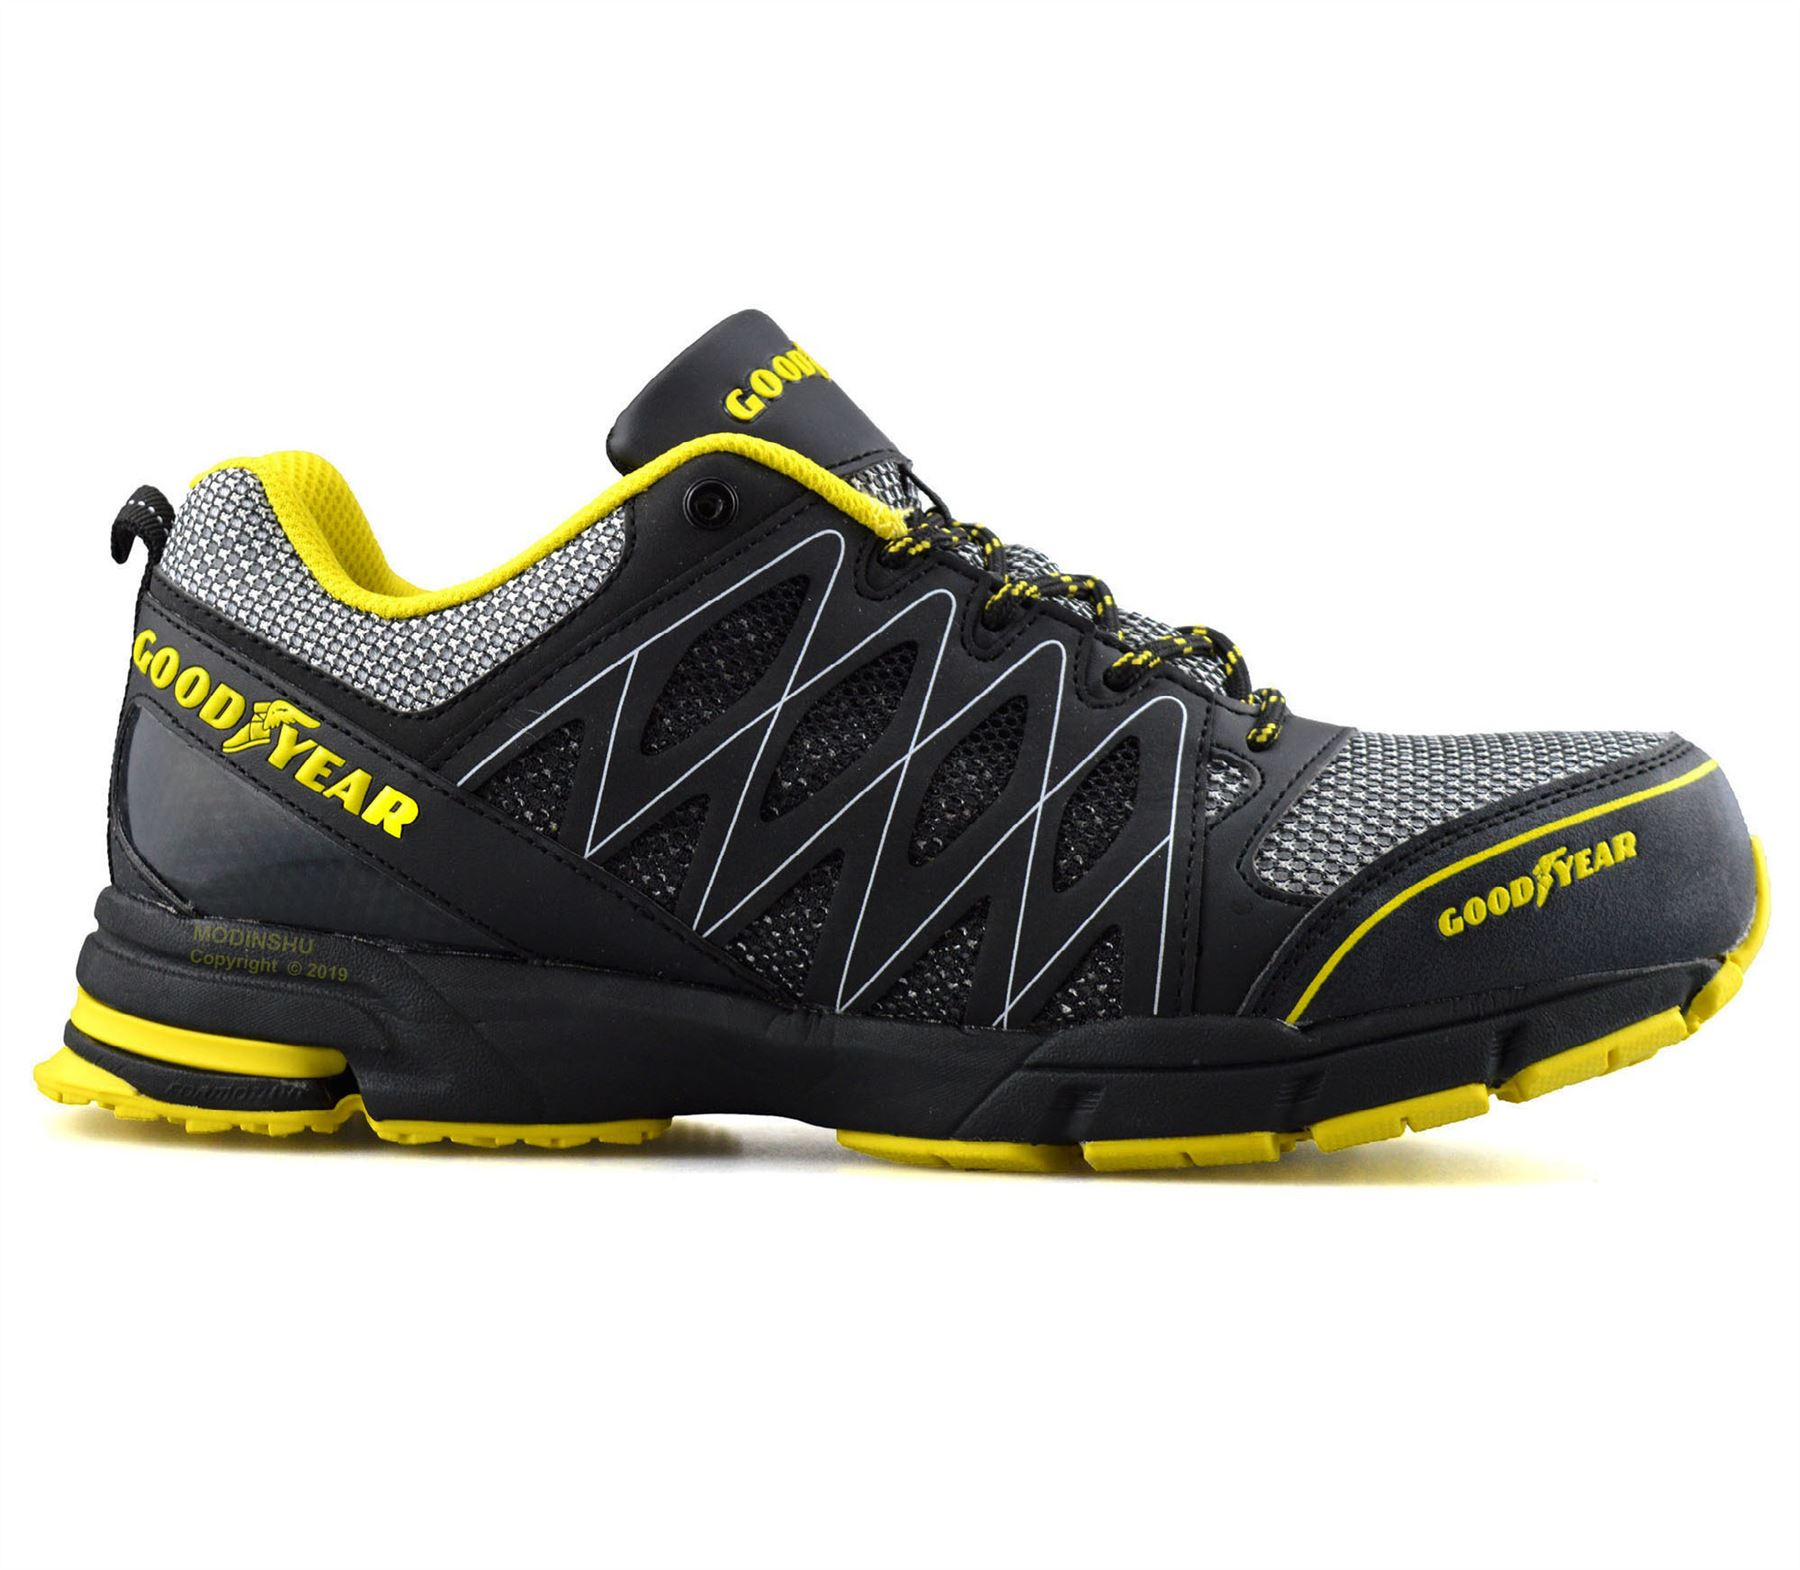 Mens-Goodyear-Safety-Steel-Toe-Cap-Work-Ankle-Hiker-Boots-Trainers-Shoes-Size thumbnail 9